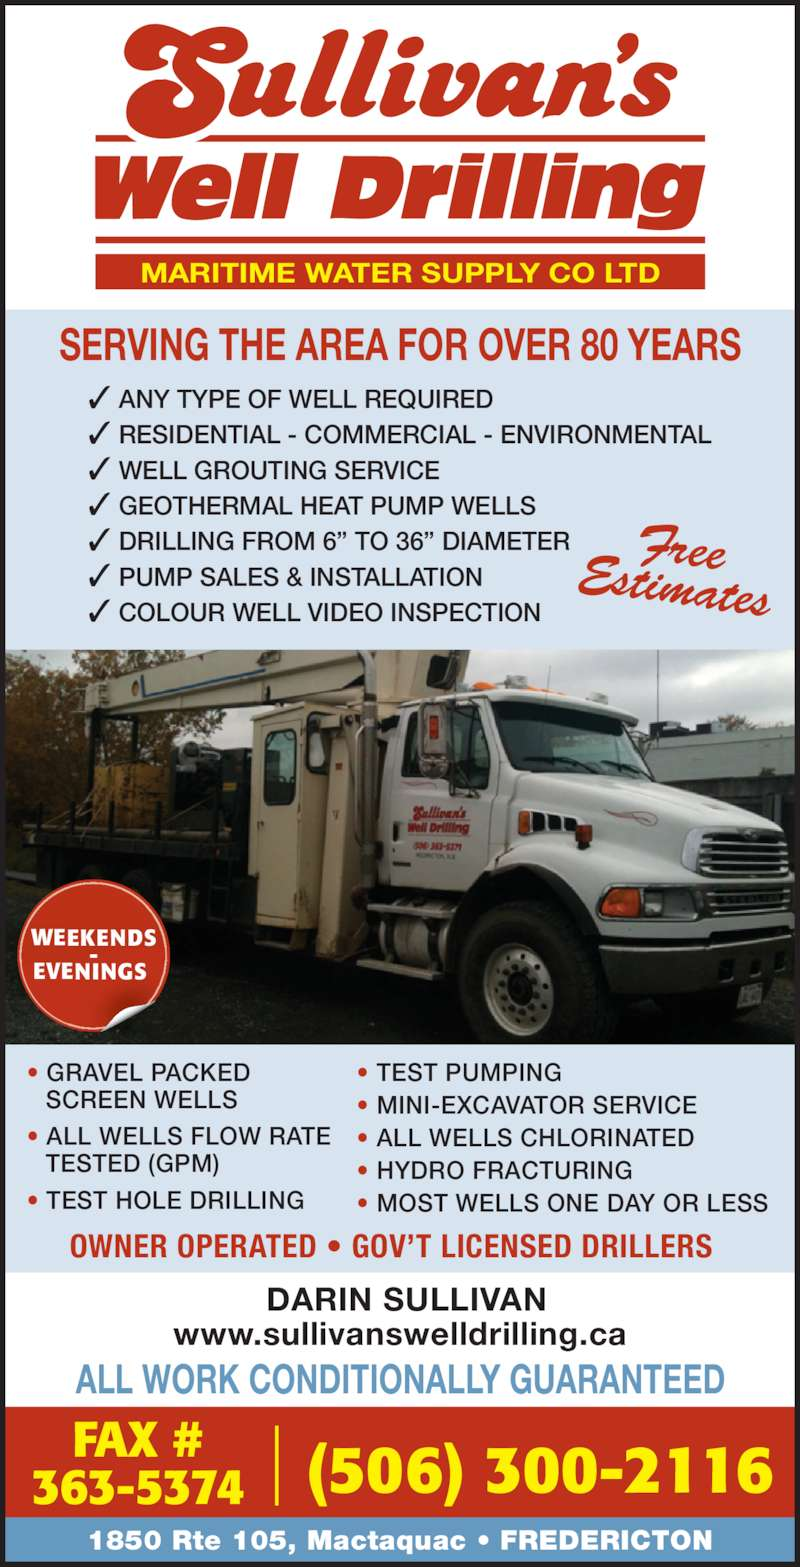 """Sullivan's Well Drilling Ltd (506-363-5371) - Display Ad - SERVING THE AREA FOR OVER 80 YEARS ANY TYPE OF WELL REQUIRED RESIDENTIAL - COMMERCIAL - ENVIRONMENTAL WELL GROUTING SERVICE GEOTHERMAL HEAT PUMP WELLS DRILLING FROM 6"""" TO 36"""" DIAMETER PUMP SALES & INSTALLATION COLOUR WELL VIDEO INSPECTION MARITIME WATER SUPPLY CO LTD ALL WORK CONDITIONALLY GUARANTEED 1850 Rte 105, Mactaquac • FREDERICTON OWNER OPERATED • GOV'T LICENSED DRILLERS DARIN SULLIVAN www.sullivanswelldrilling.ca (506) 300-2116FAX #363-5374 FreeEstimates • GRAVEL PACKED  SCREEN WELLS • ALL WELLS FLOW RATE  TESTED (GPM) • TEST HOLE DRILLING • TEST PUMPING • MINI-EXCAVATOR SERVICE • ALL WELLS CHLORINATED • HYDRO FRACTURING • MOST WELLS ONE DAY OR LESS WEEKENDS EVENINGS"""